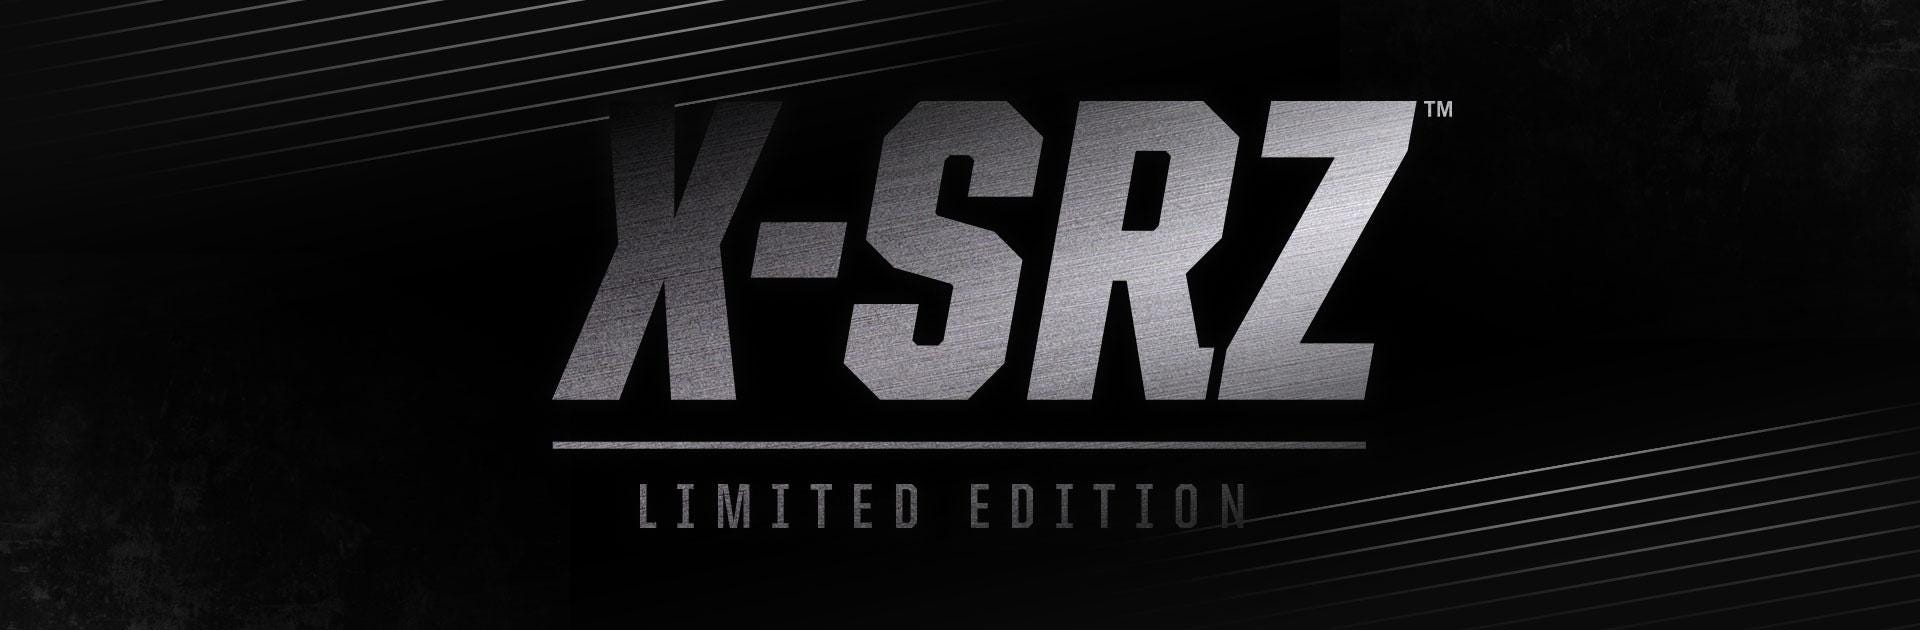 X-SRZ Limited Edition Protective Gear